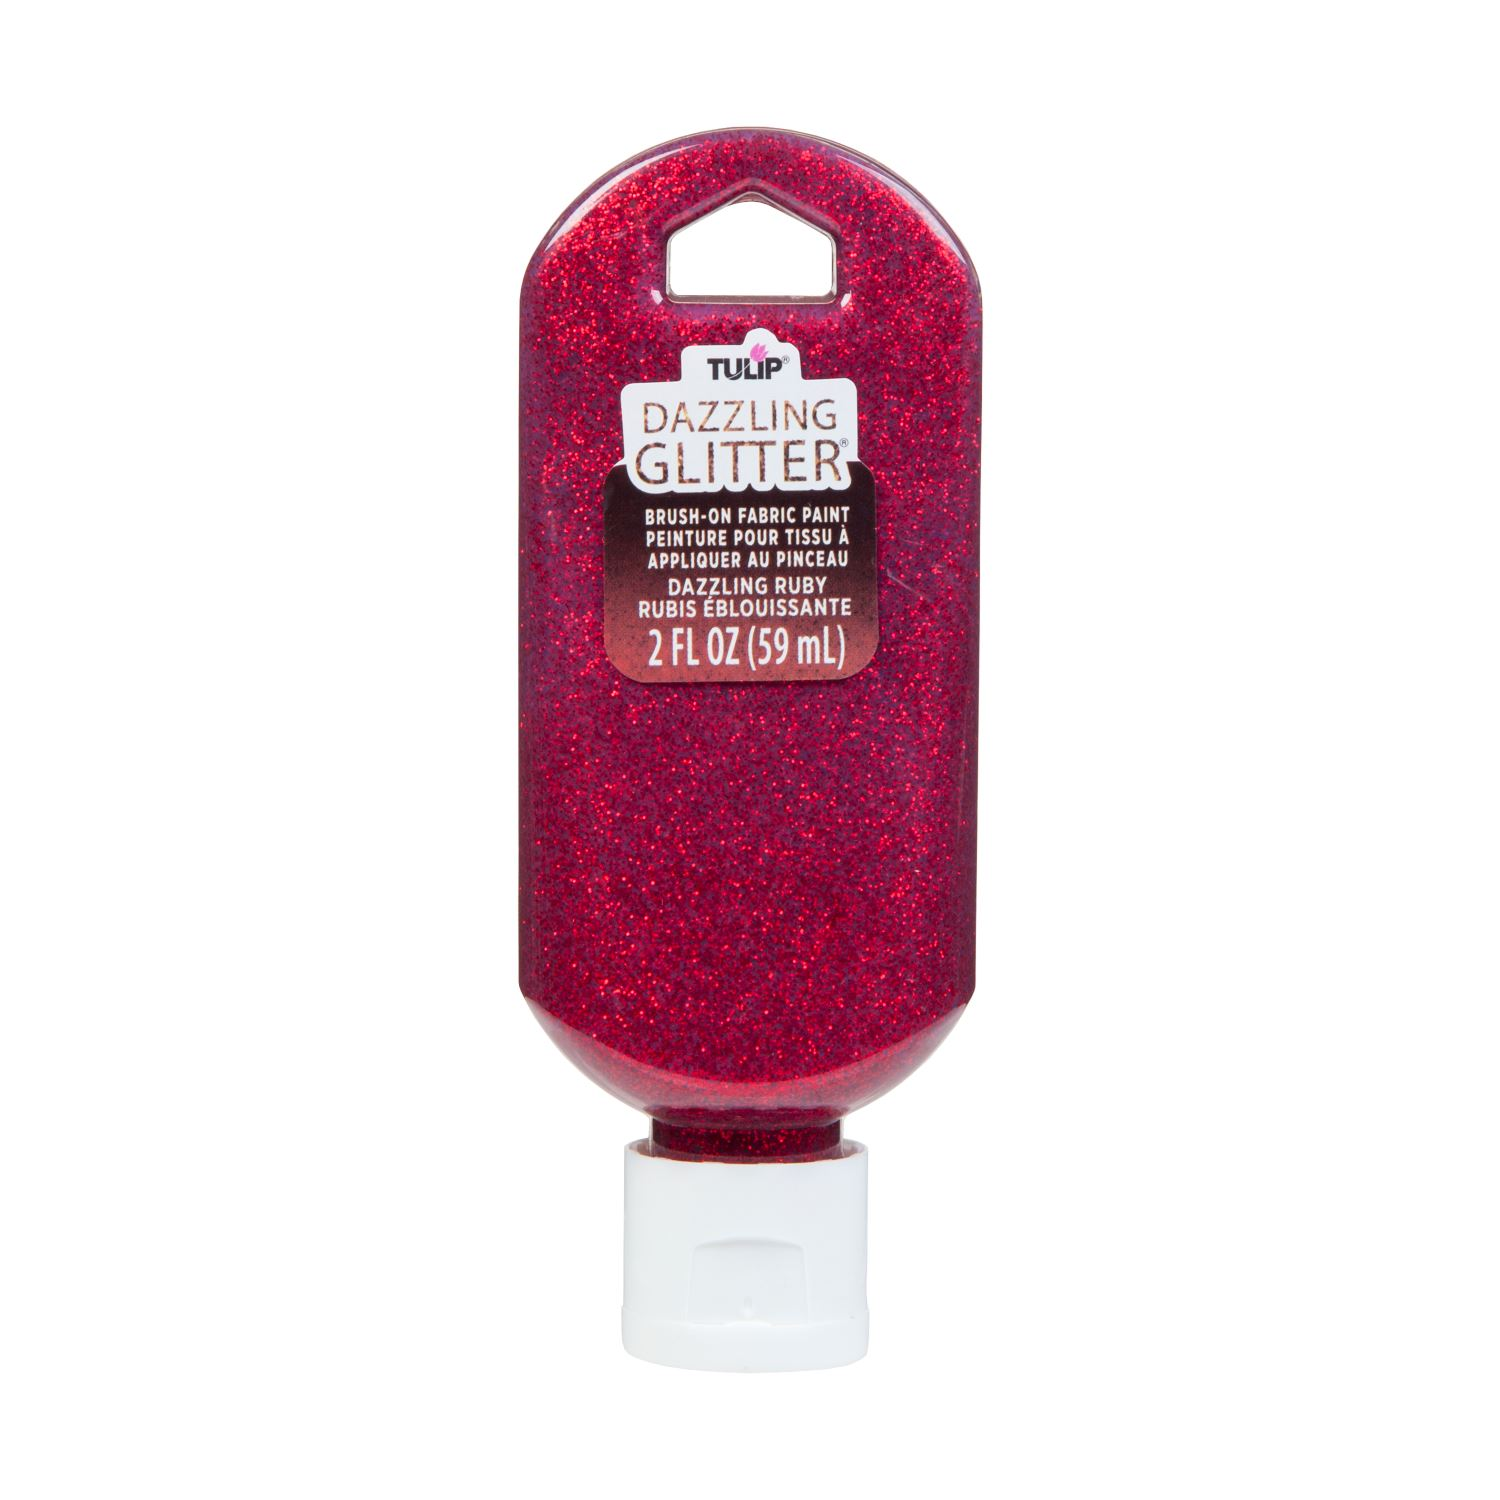 Picture of Dazzling Glitter Brush-On Fabric Paint Dazzling Ruby